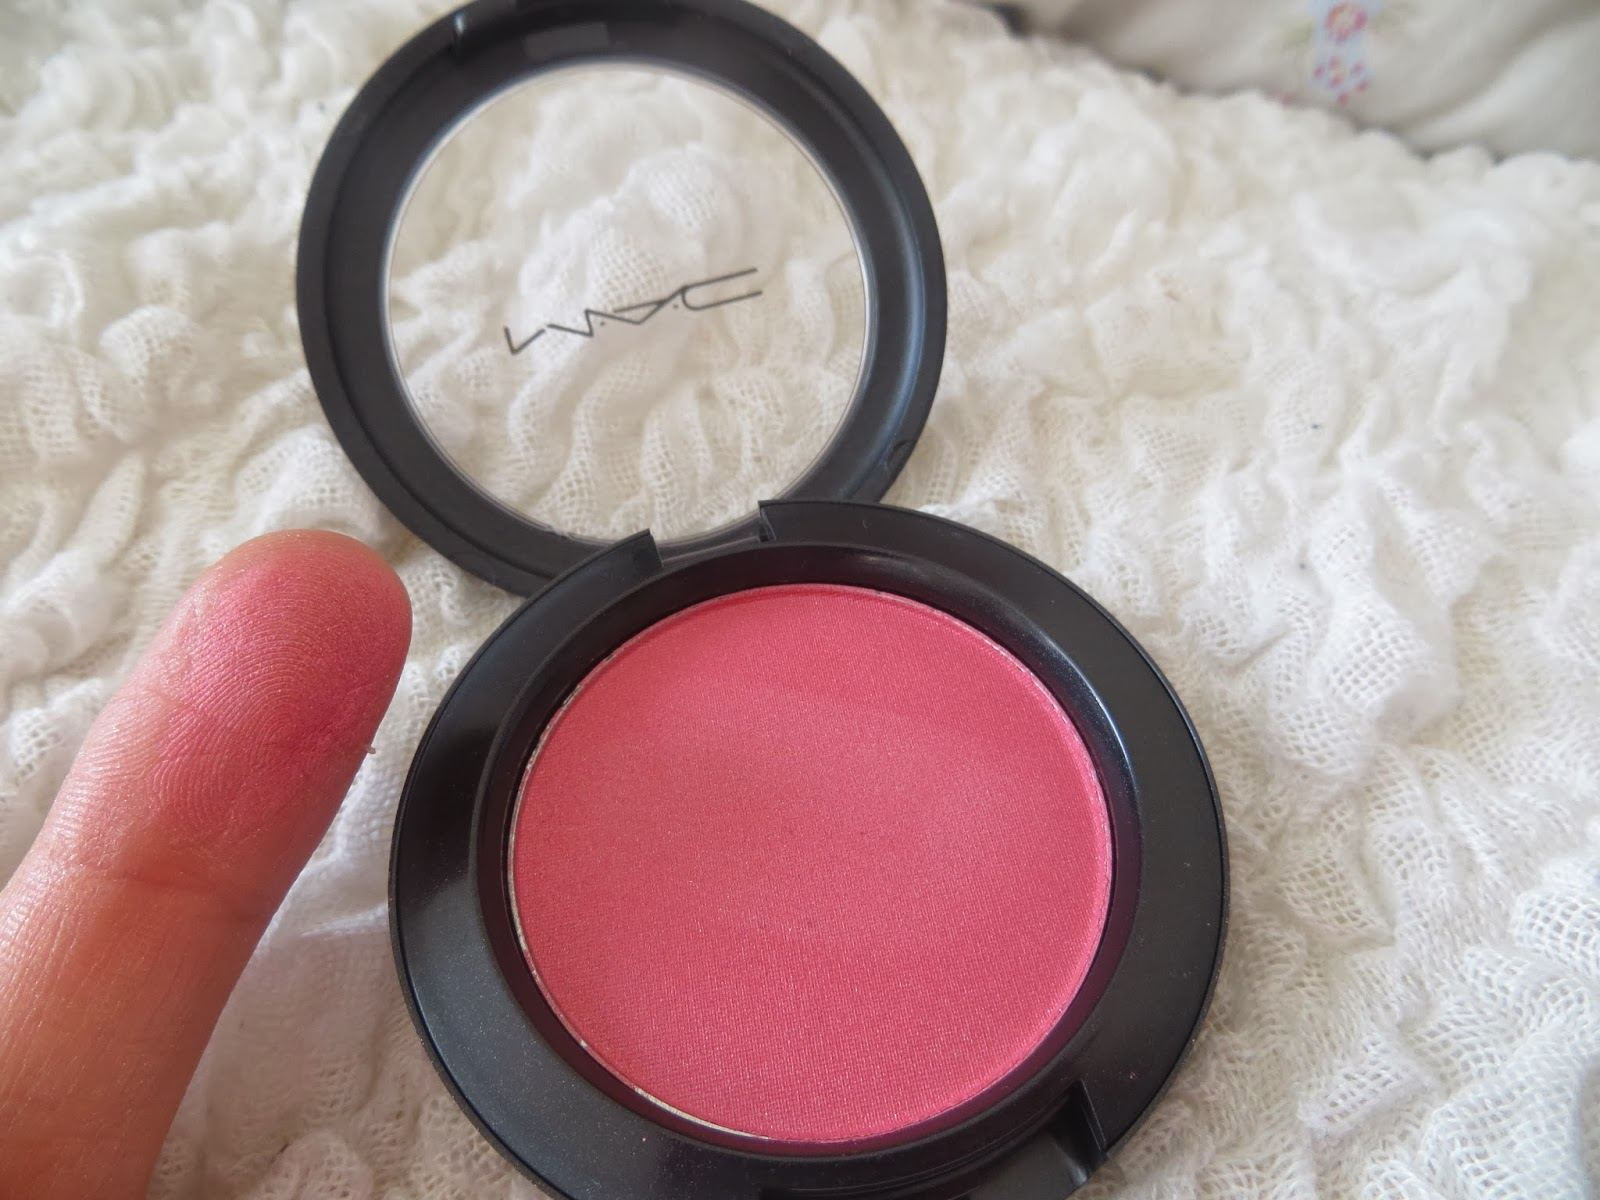 MAC, Blusher, Blush, Dolly Mix, Pink, Review, Shimmer, Pretty, Swatch